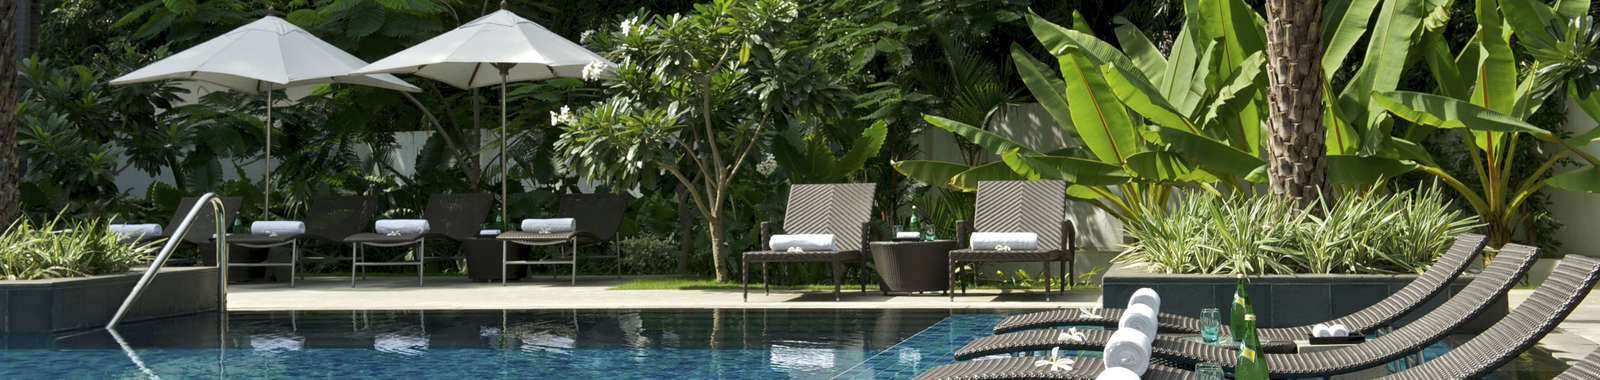 01TajCoromandel34173574-H1-Swimming_Pool_1